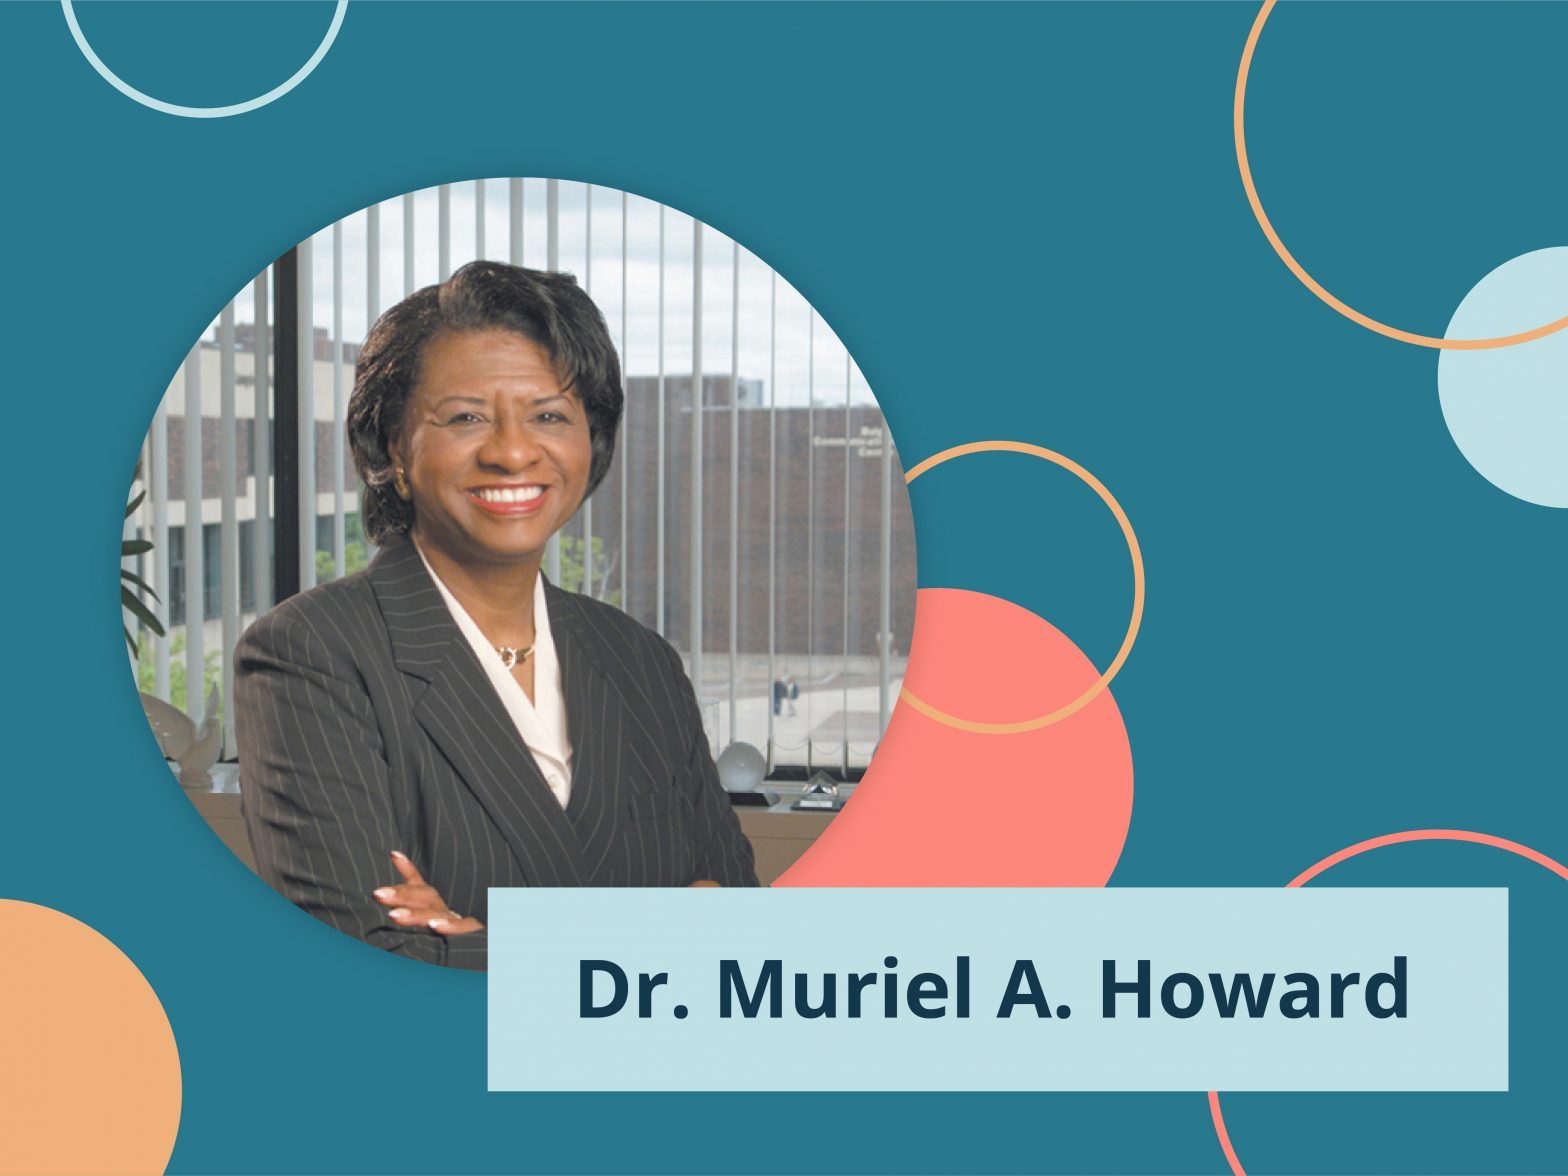 Image of Dr. Muriel A Howard with colorful background and name